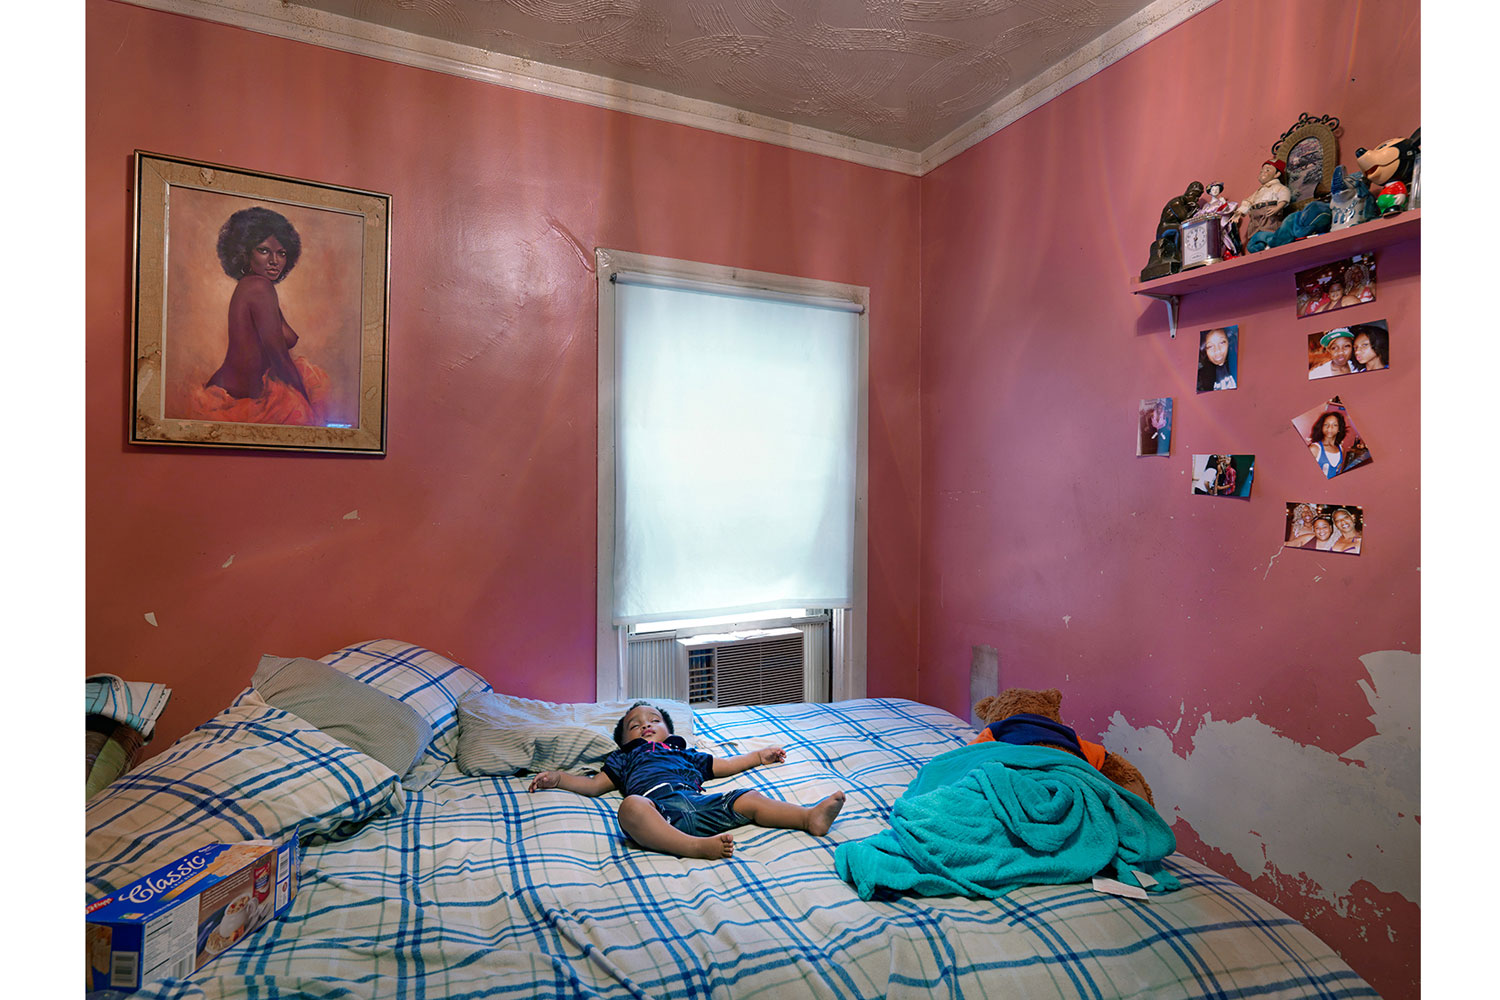 Semira Sleeping in Kat's House, Eastside, Detroit, 2012                                                              The child of a homeless mother sleeps in Kat's bedroom. Kat will take anyone into her home who needs food or shelter. Often as many as eight people stay in her small two-bedroom house.